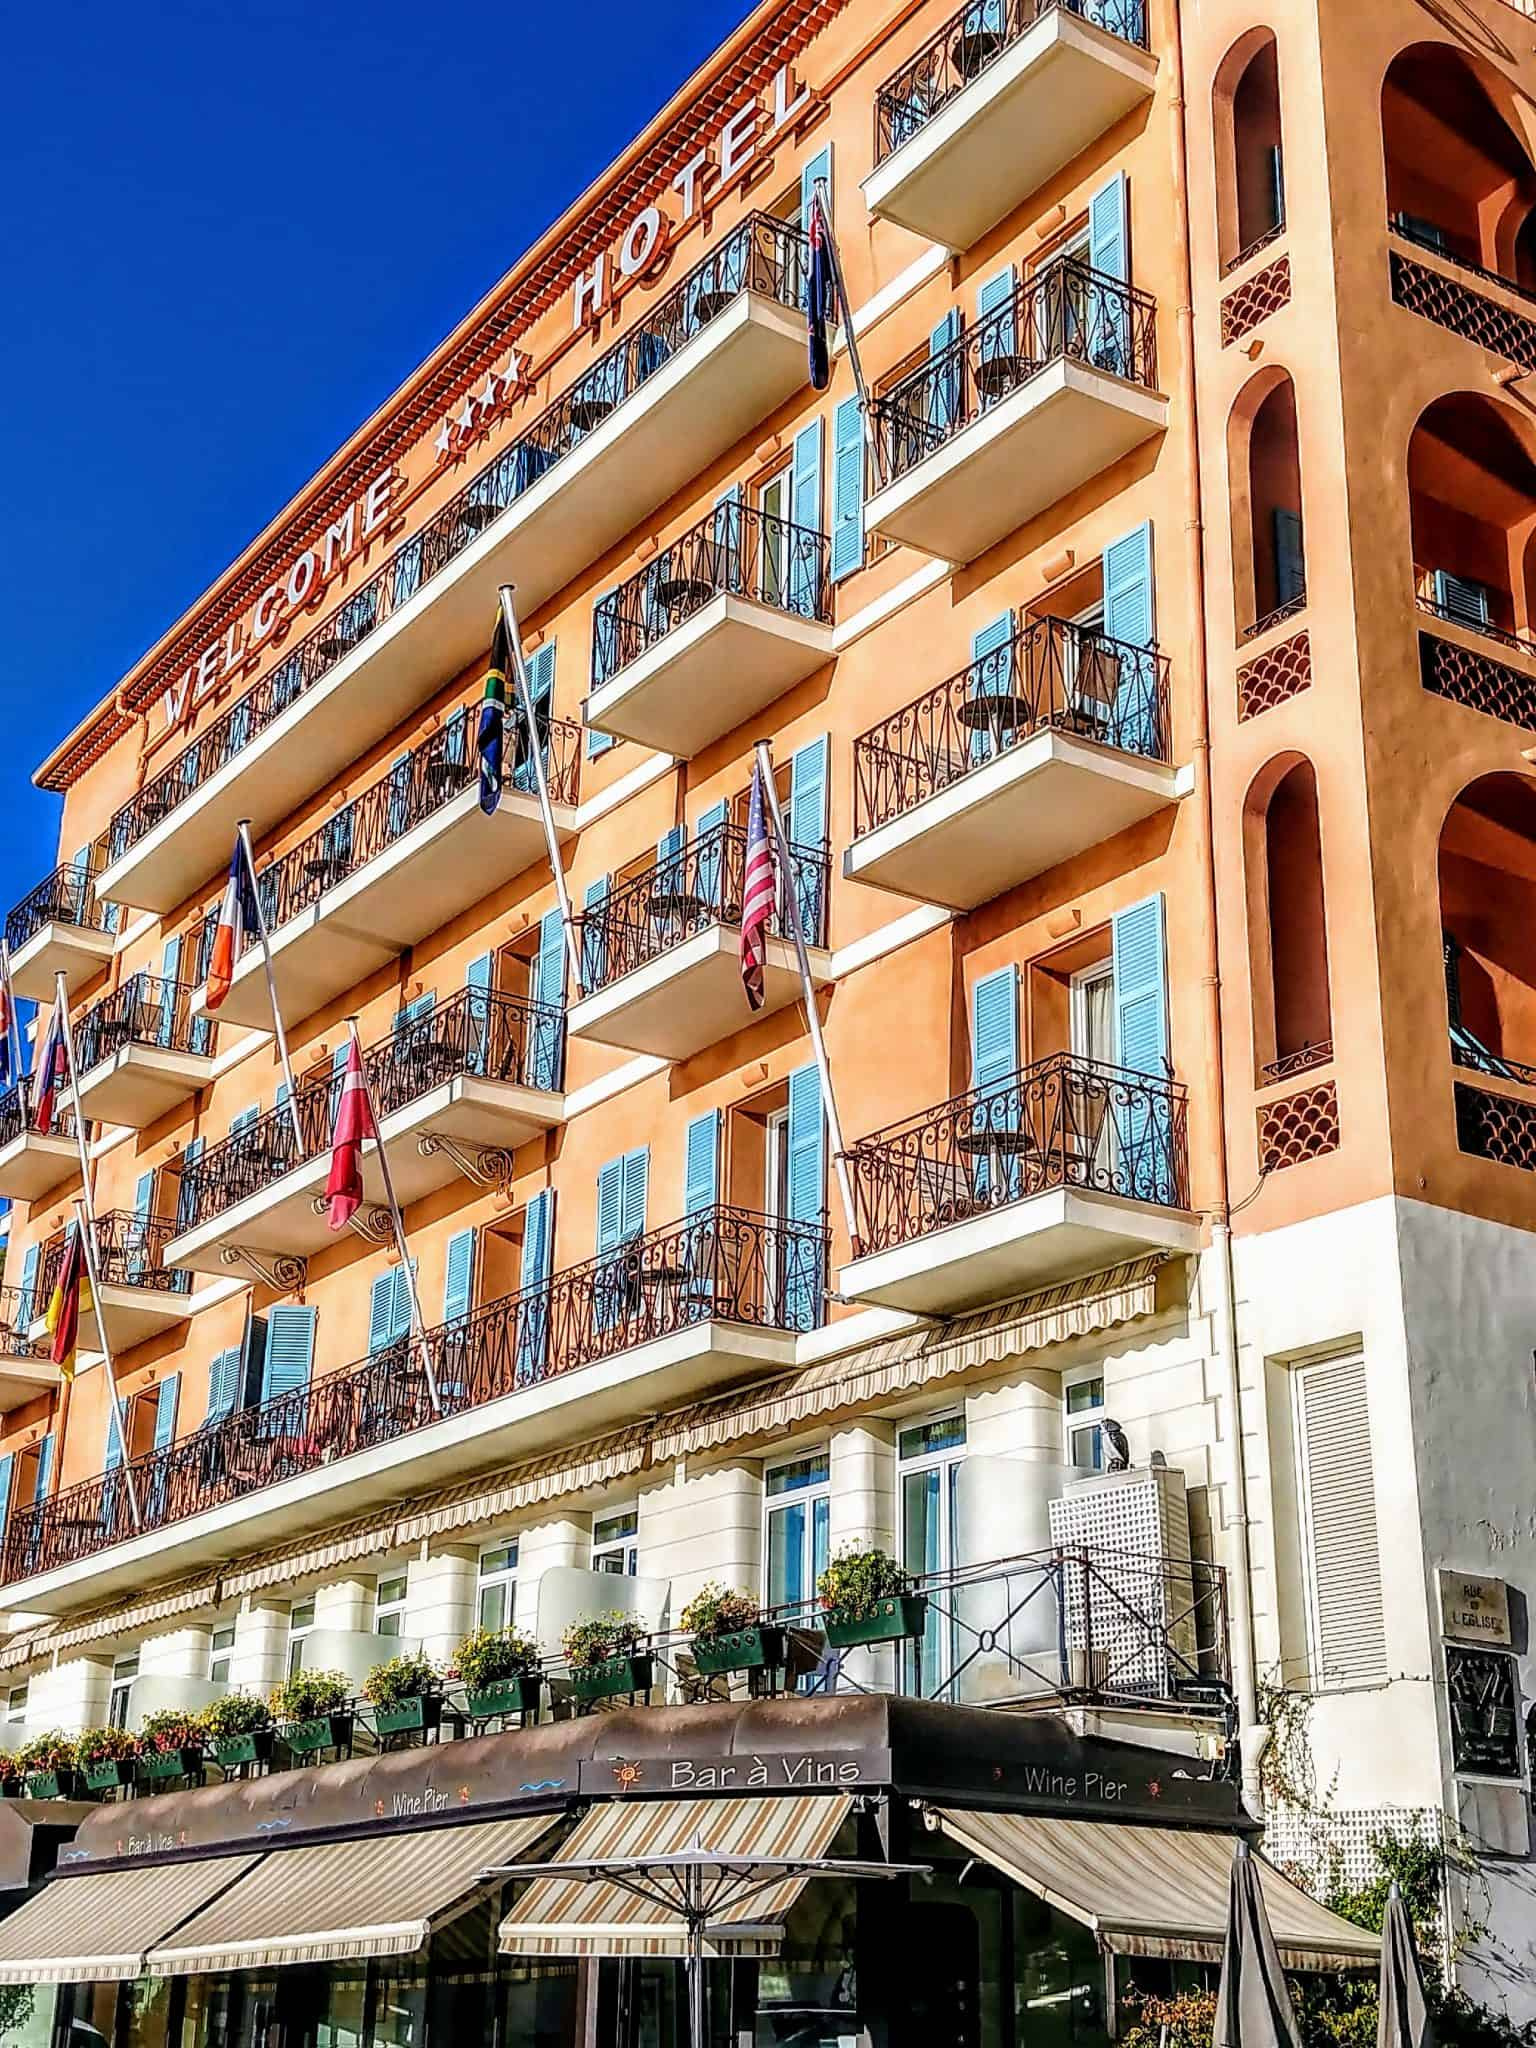 Welcome Hotel Villefranche Sur Mer France Front of hotel with balconies